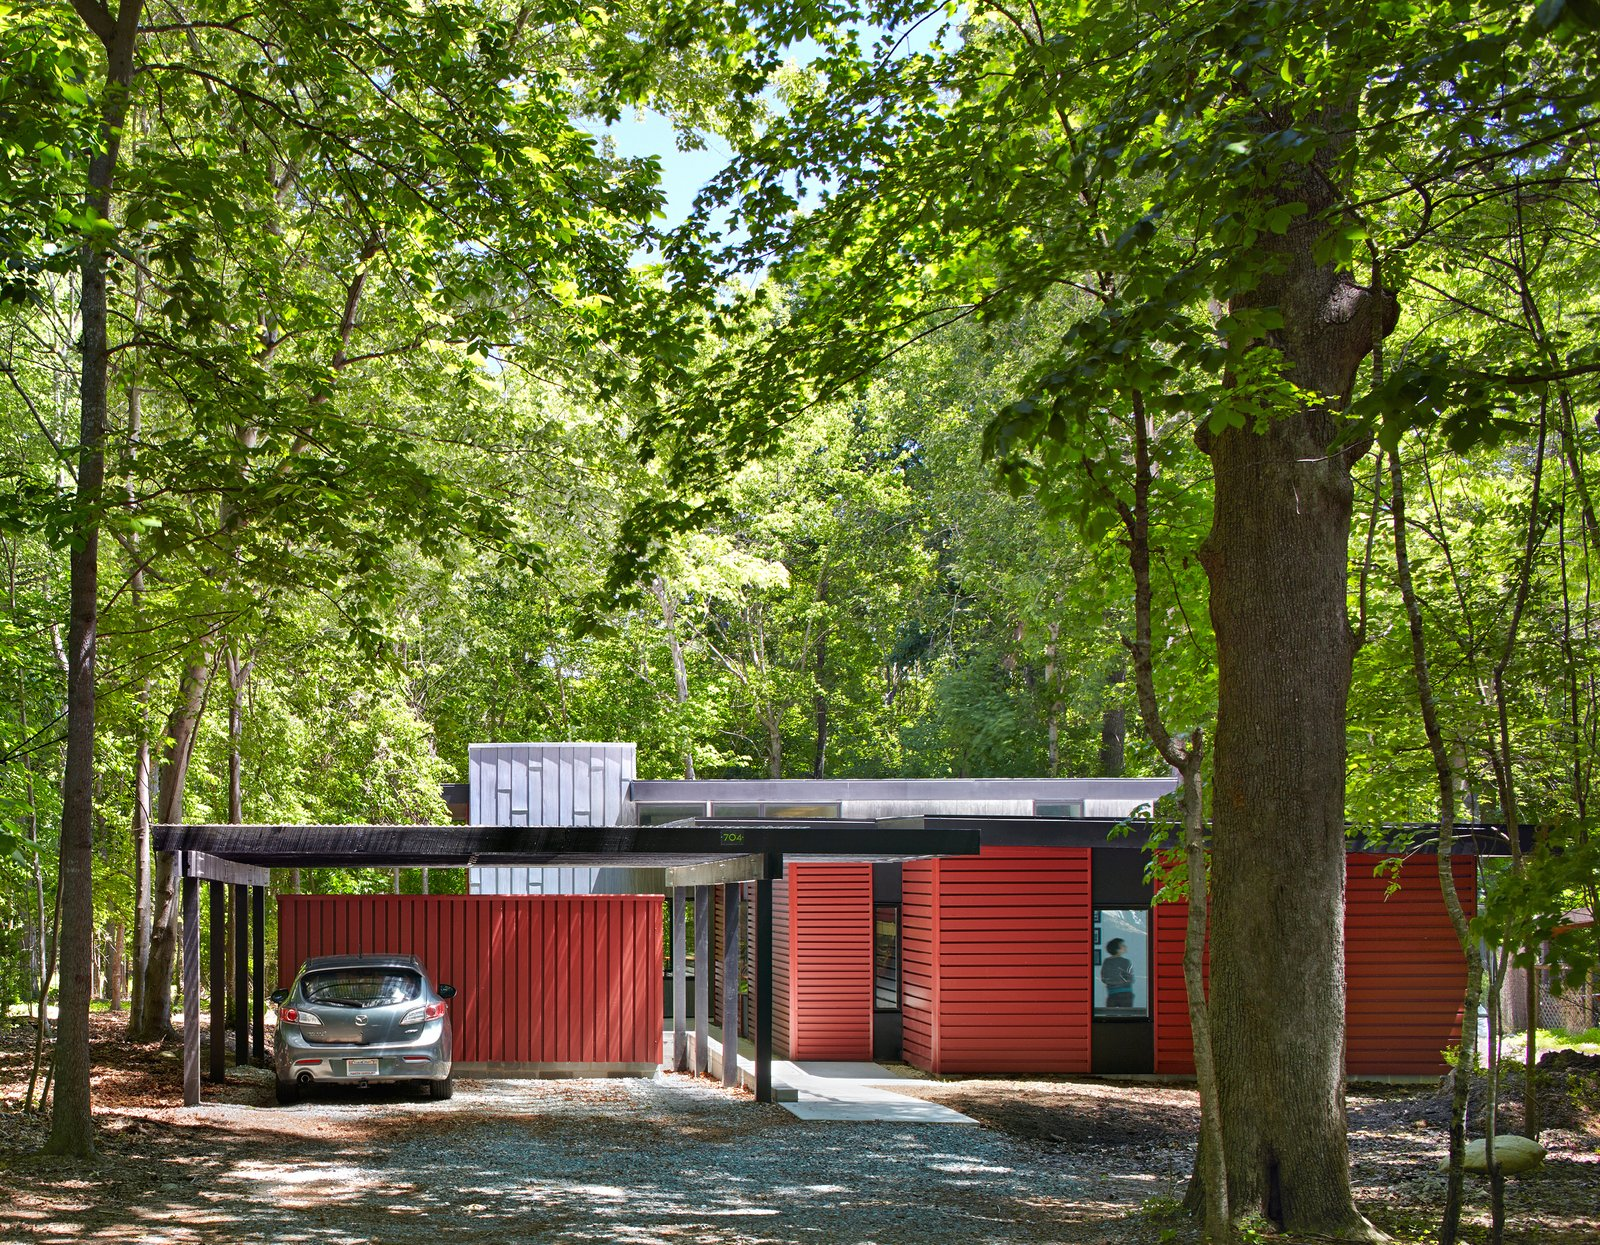 "Topped with translucent polycarbonate roof panels, the carport and storage shed helps buffer the home from the road. ""It's part of easing into the site with increasing enclosure along the entry axis,"" Hart says. ""We created a purposefully drawn-out experience that's intended to heighten awareness of the site and gradually transition from the forest to the home."" Tagged: Exterior, House, and Metal Siding Material.  Tiny Homes by Scott Saunders from This Light-Filled Metallic Home Embraces Its Wooded Site"